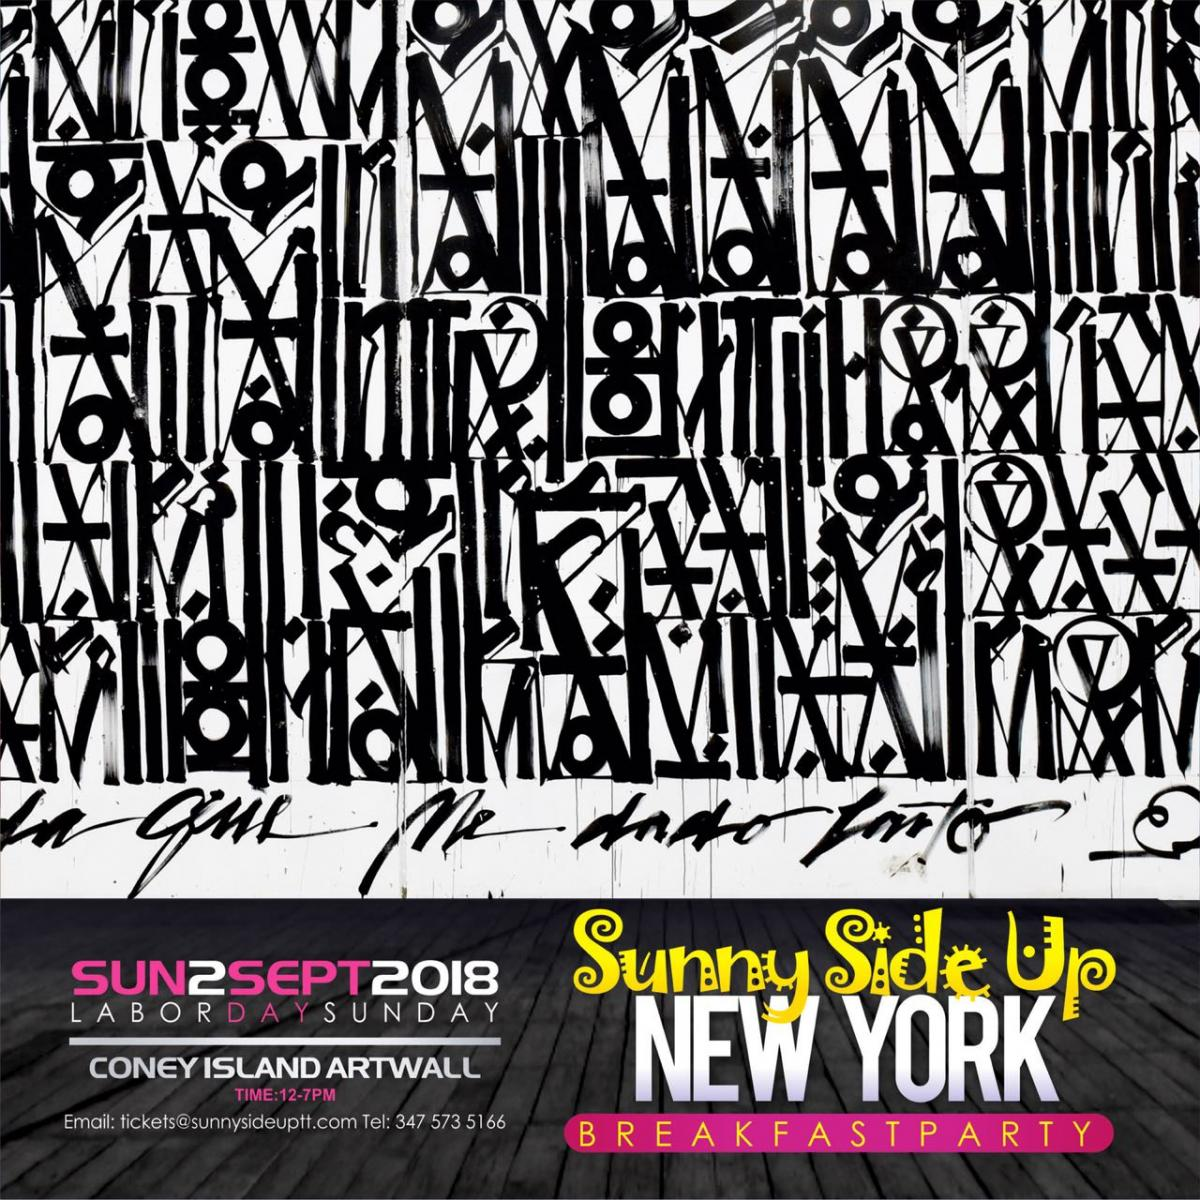 Sunny Side Up Breakfast Party flyer or graphic.